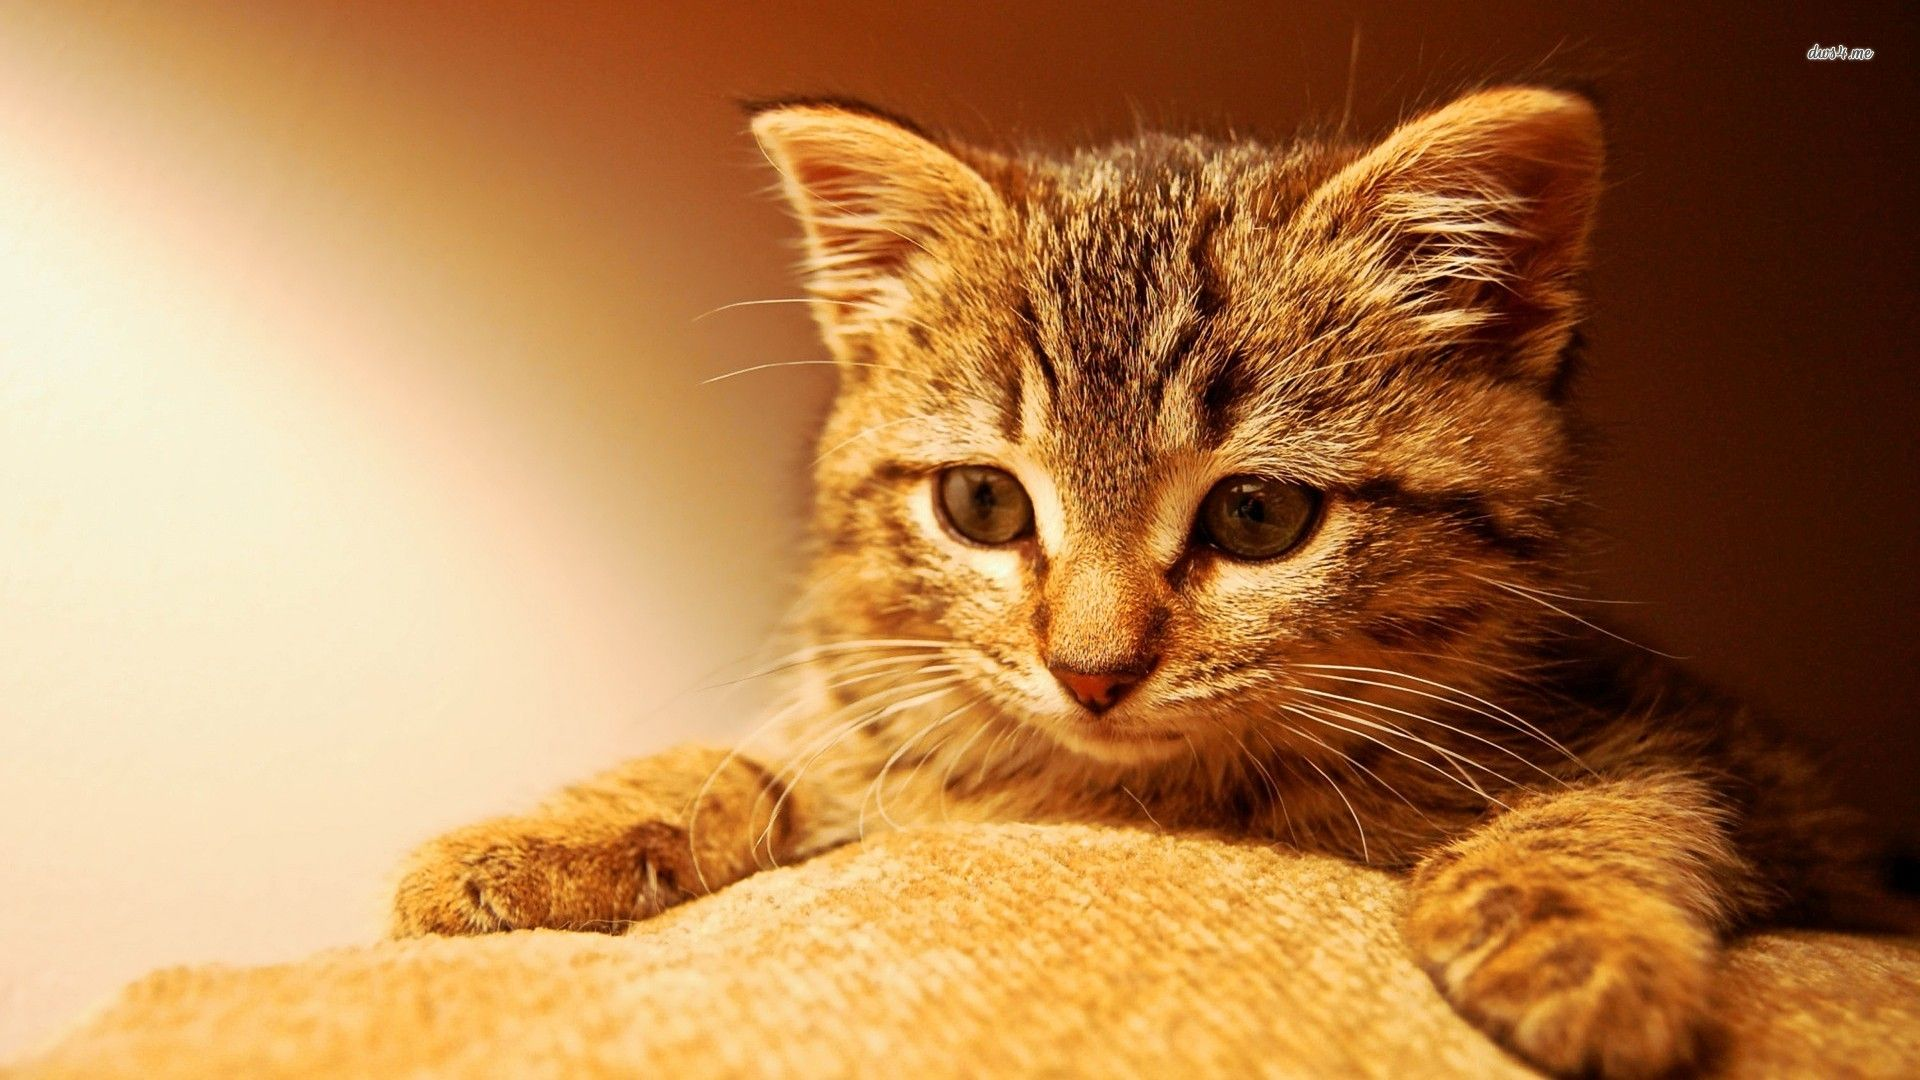 Kitten Wallpapers Android Apps On Google Play 1920x1080 Cute Pictures 44